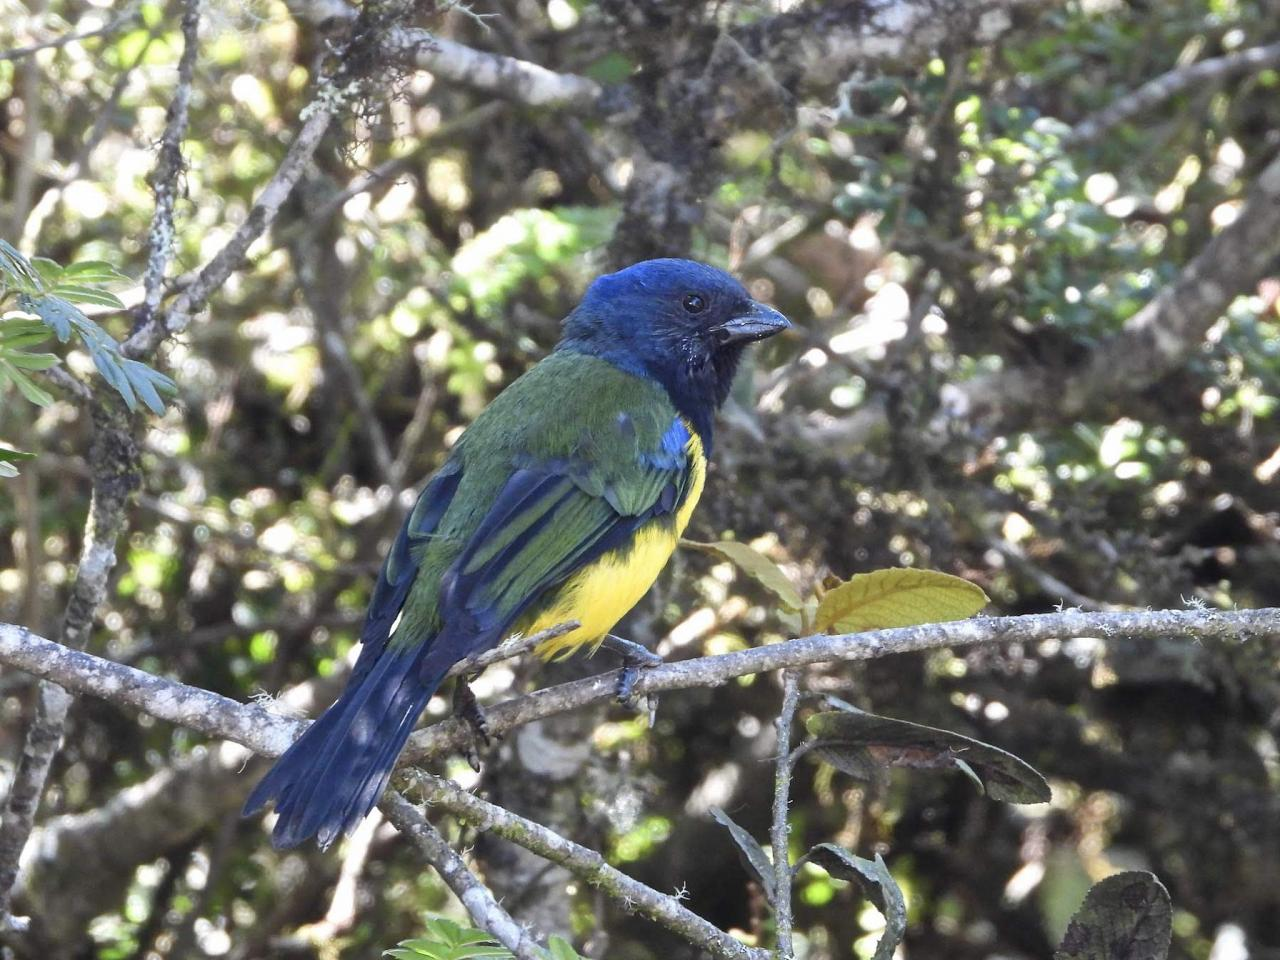 Blue-winged Mountain Tanager, Ecuador, Ecuador Birding Tour, Ecuador Nature Tour, Cuenca, Quito, Naturalist Journeys